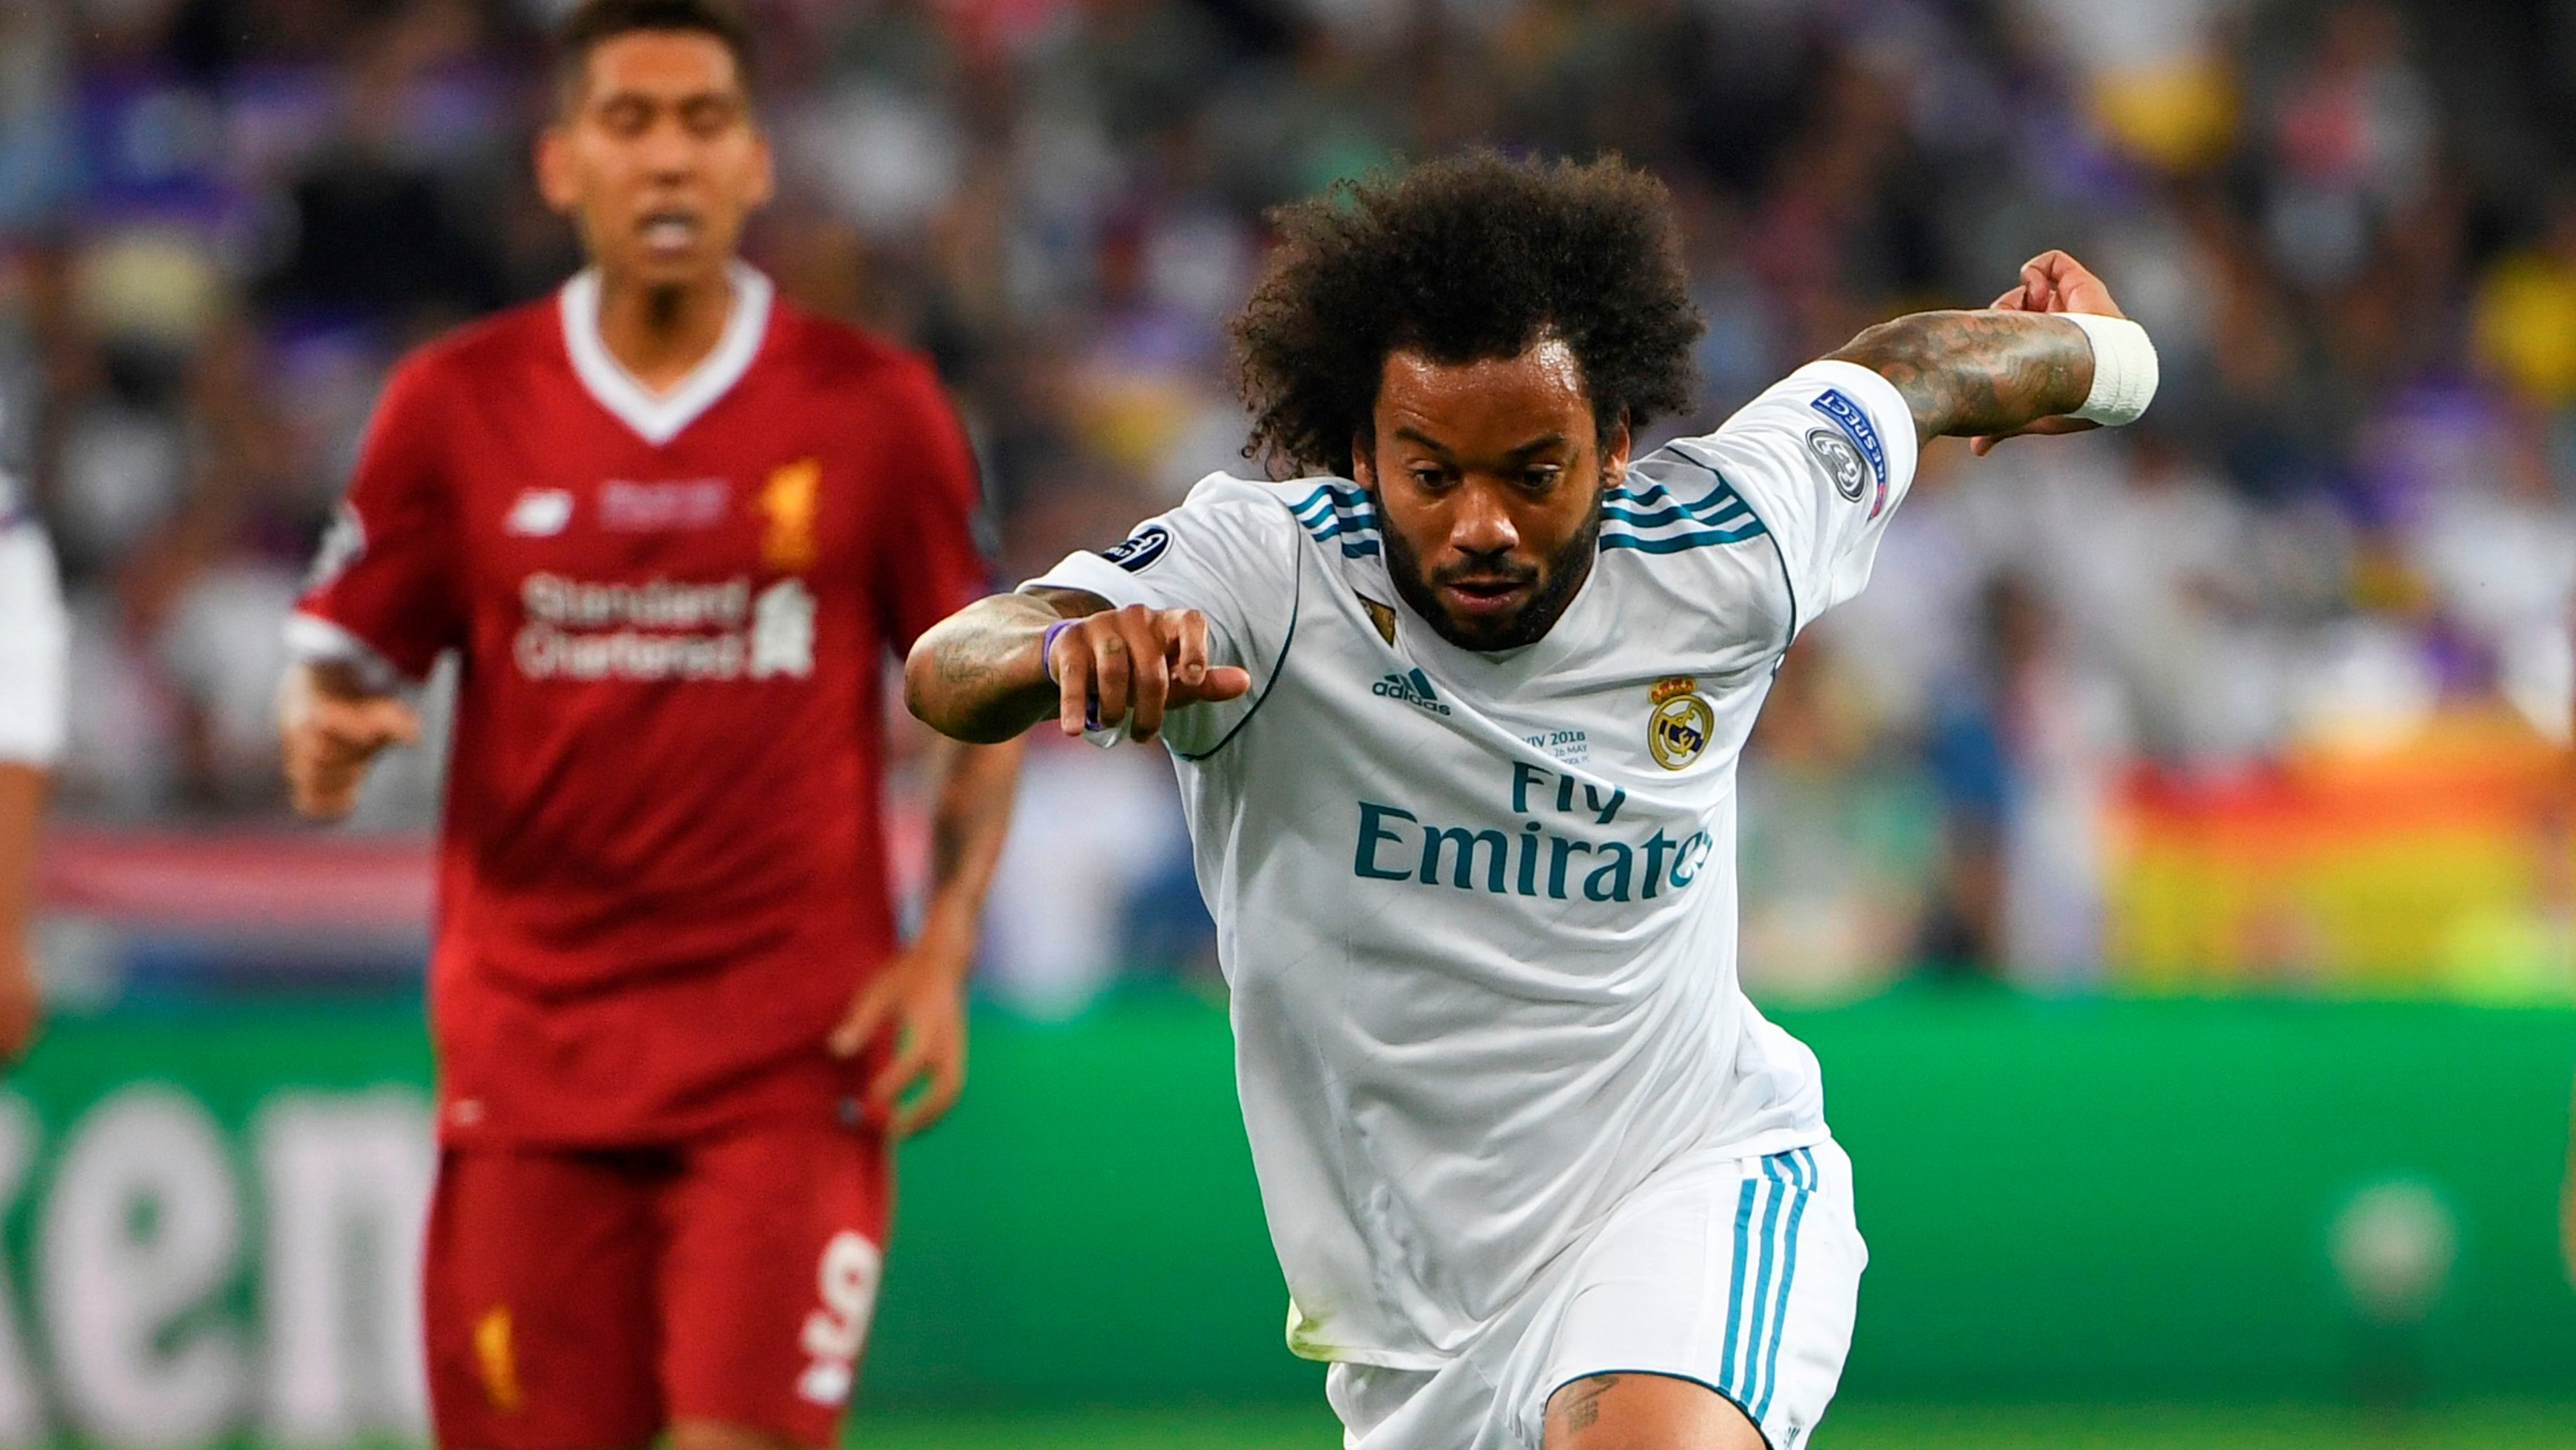 'If I have to die out here, I'll f*cking die!' - Marcelo reveals anxiety of playing in the Champions League final